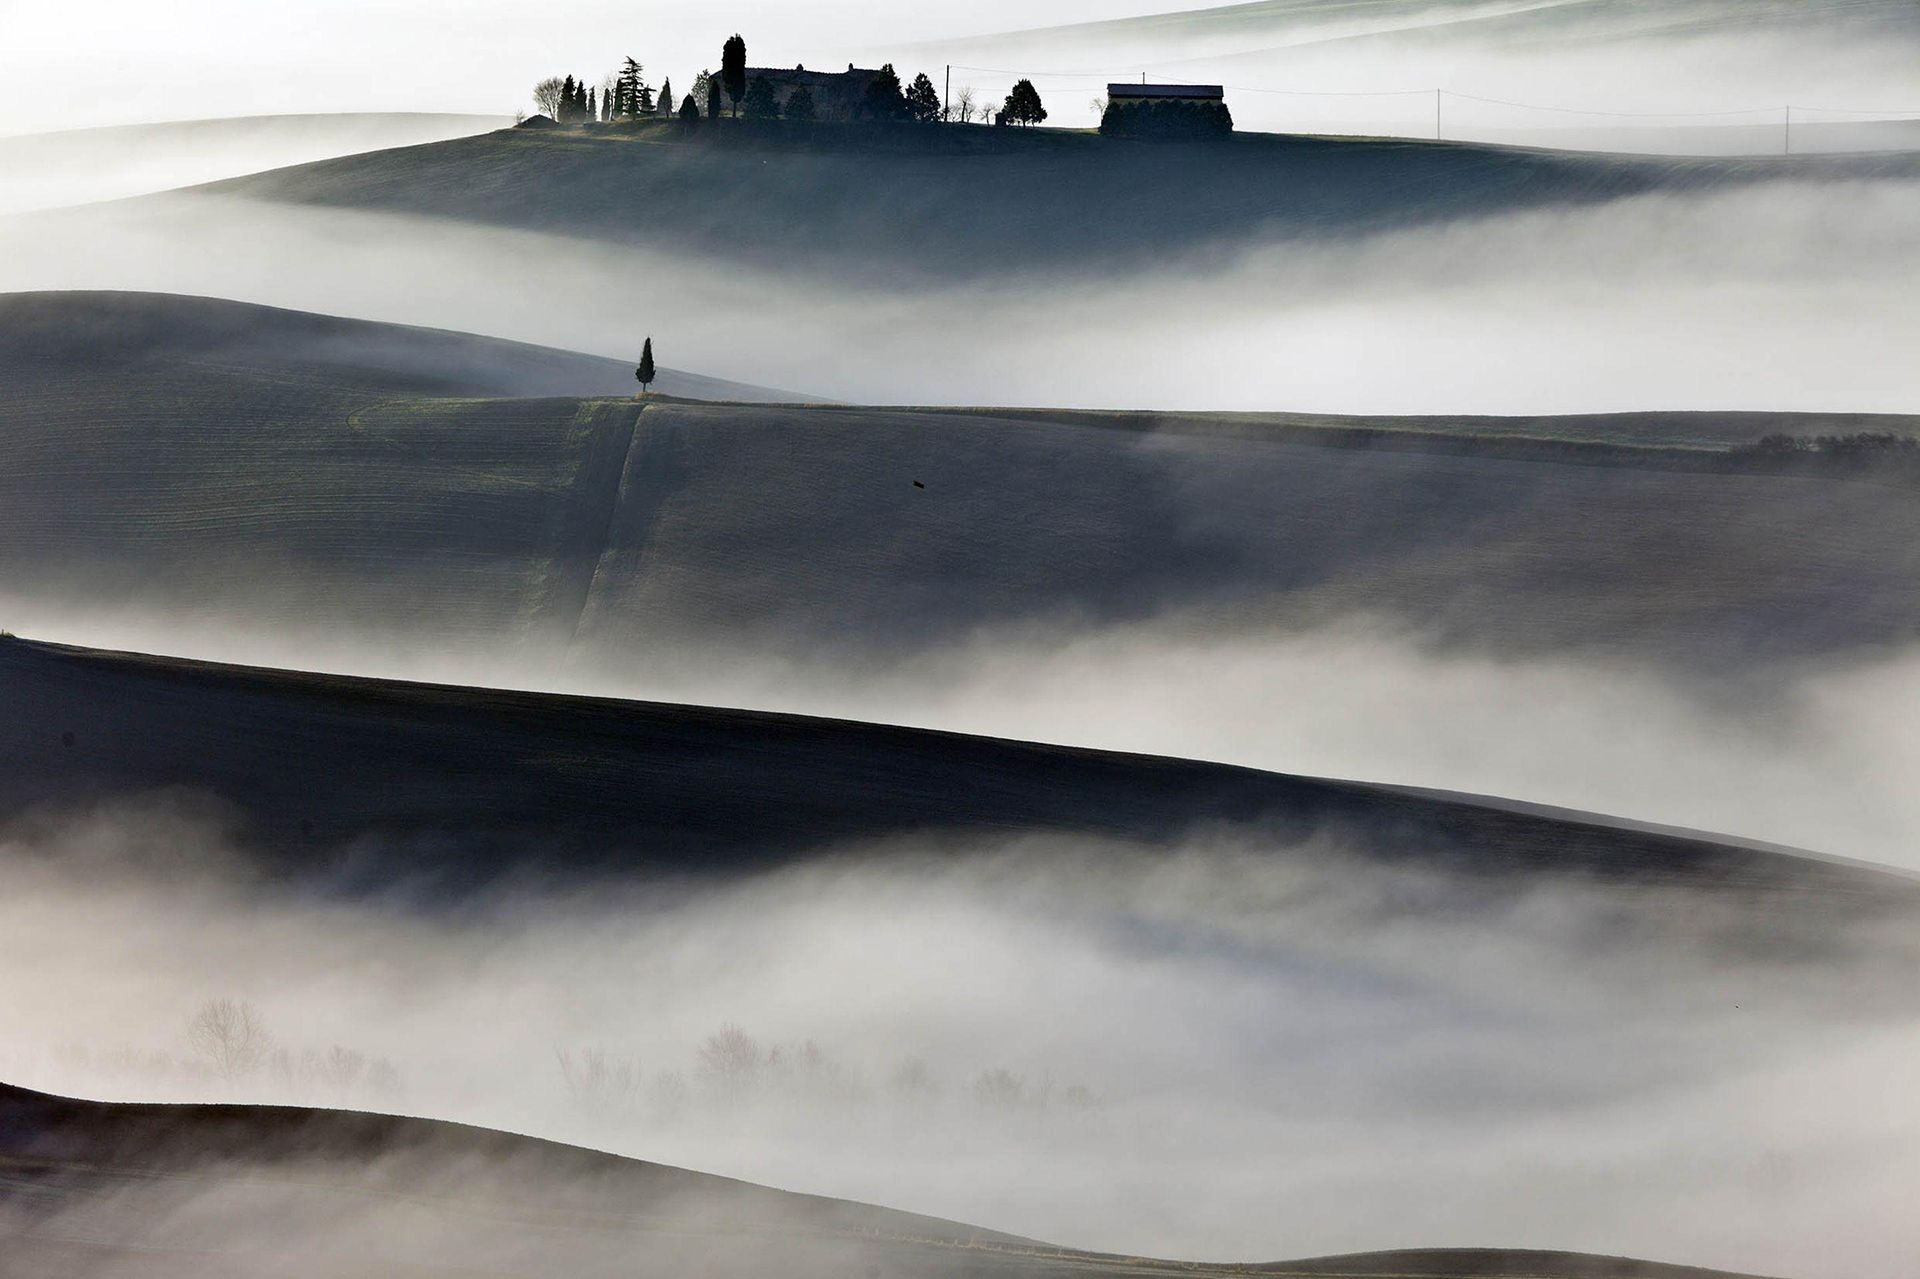 Photograph by R. Raggi, National Geographic Your Shot